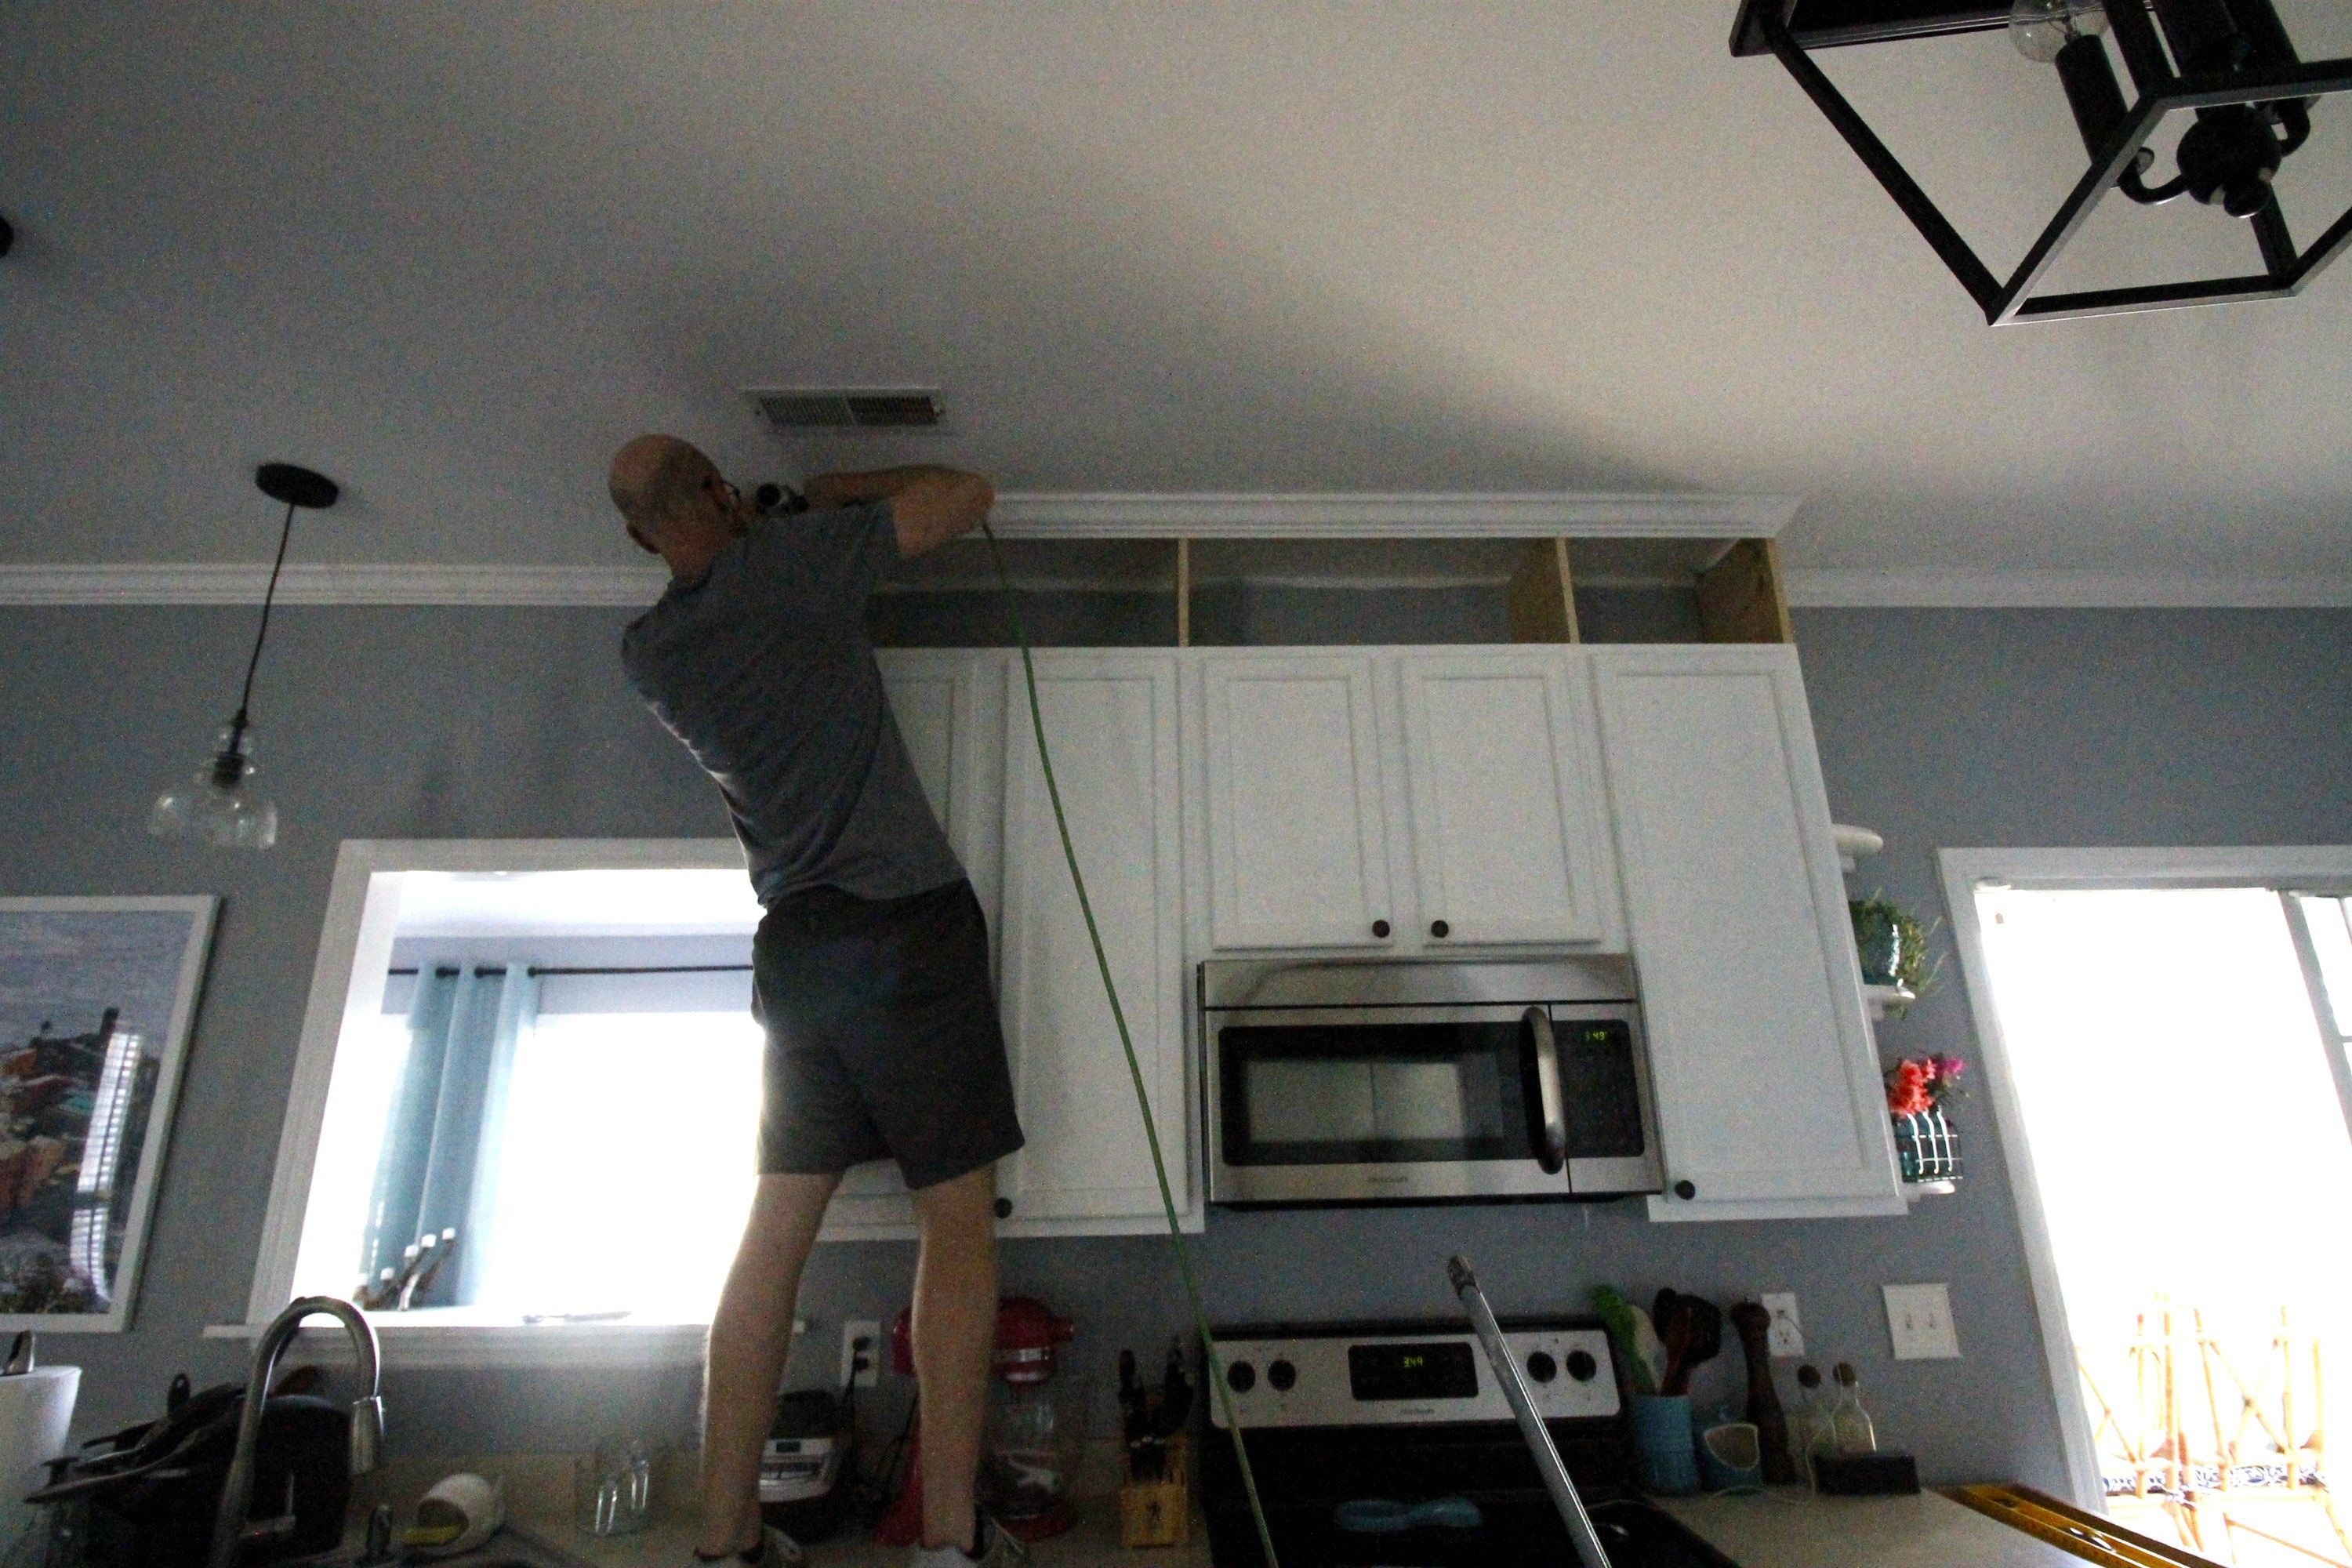 How To Extend Kitchen Cabinets To The Ceiling Kitchen Cabinets Height Upper Kitchen Cabinets Cheap Kitchen Remodel